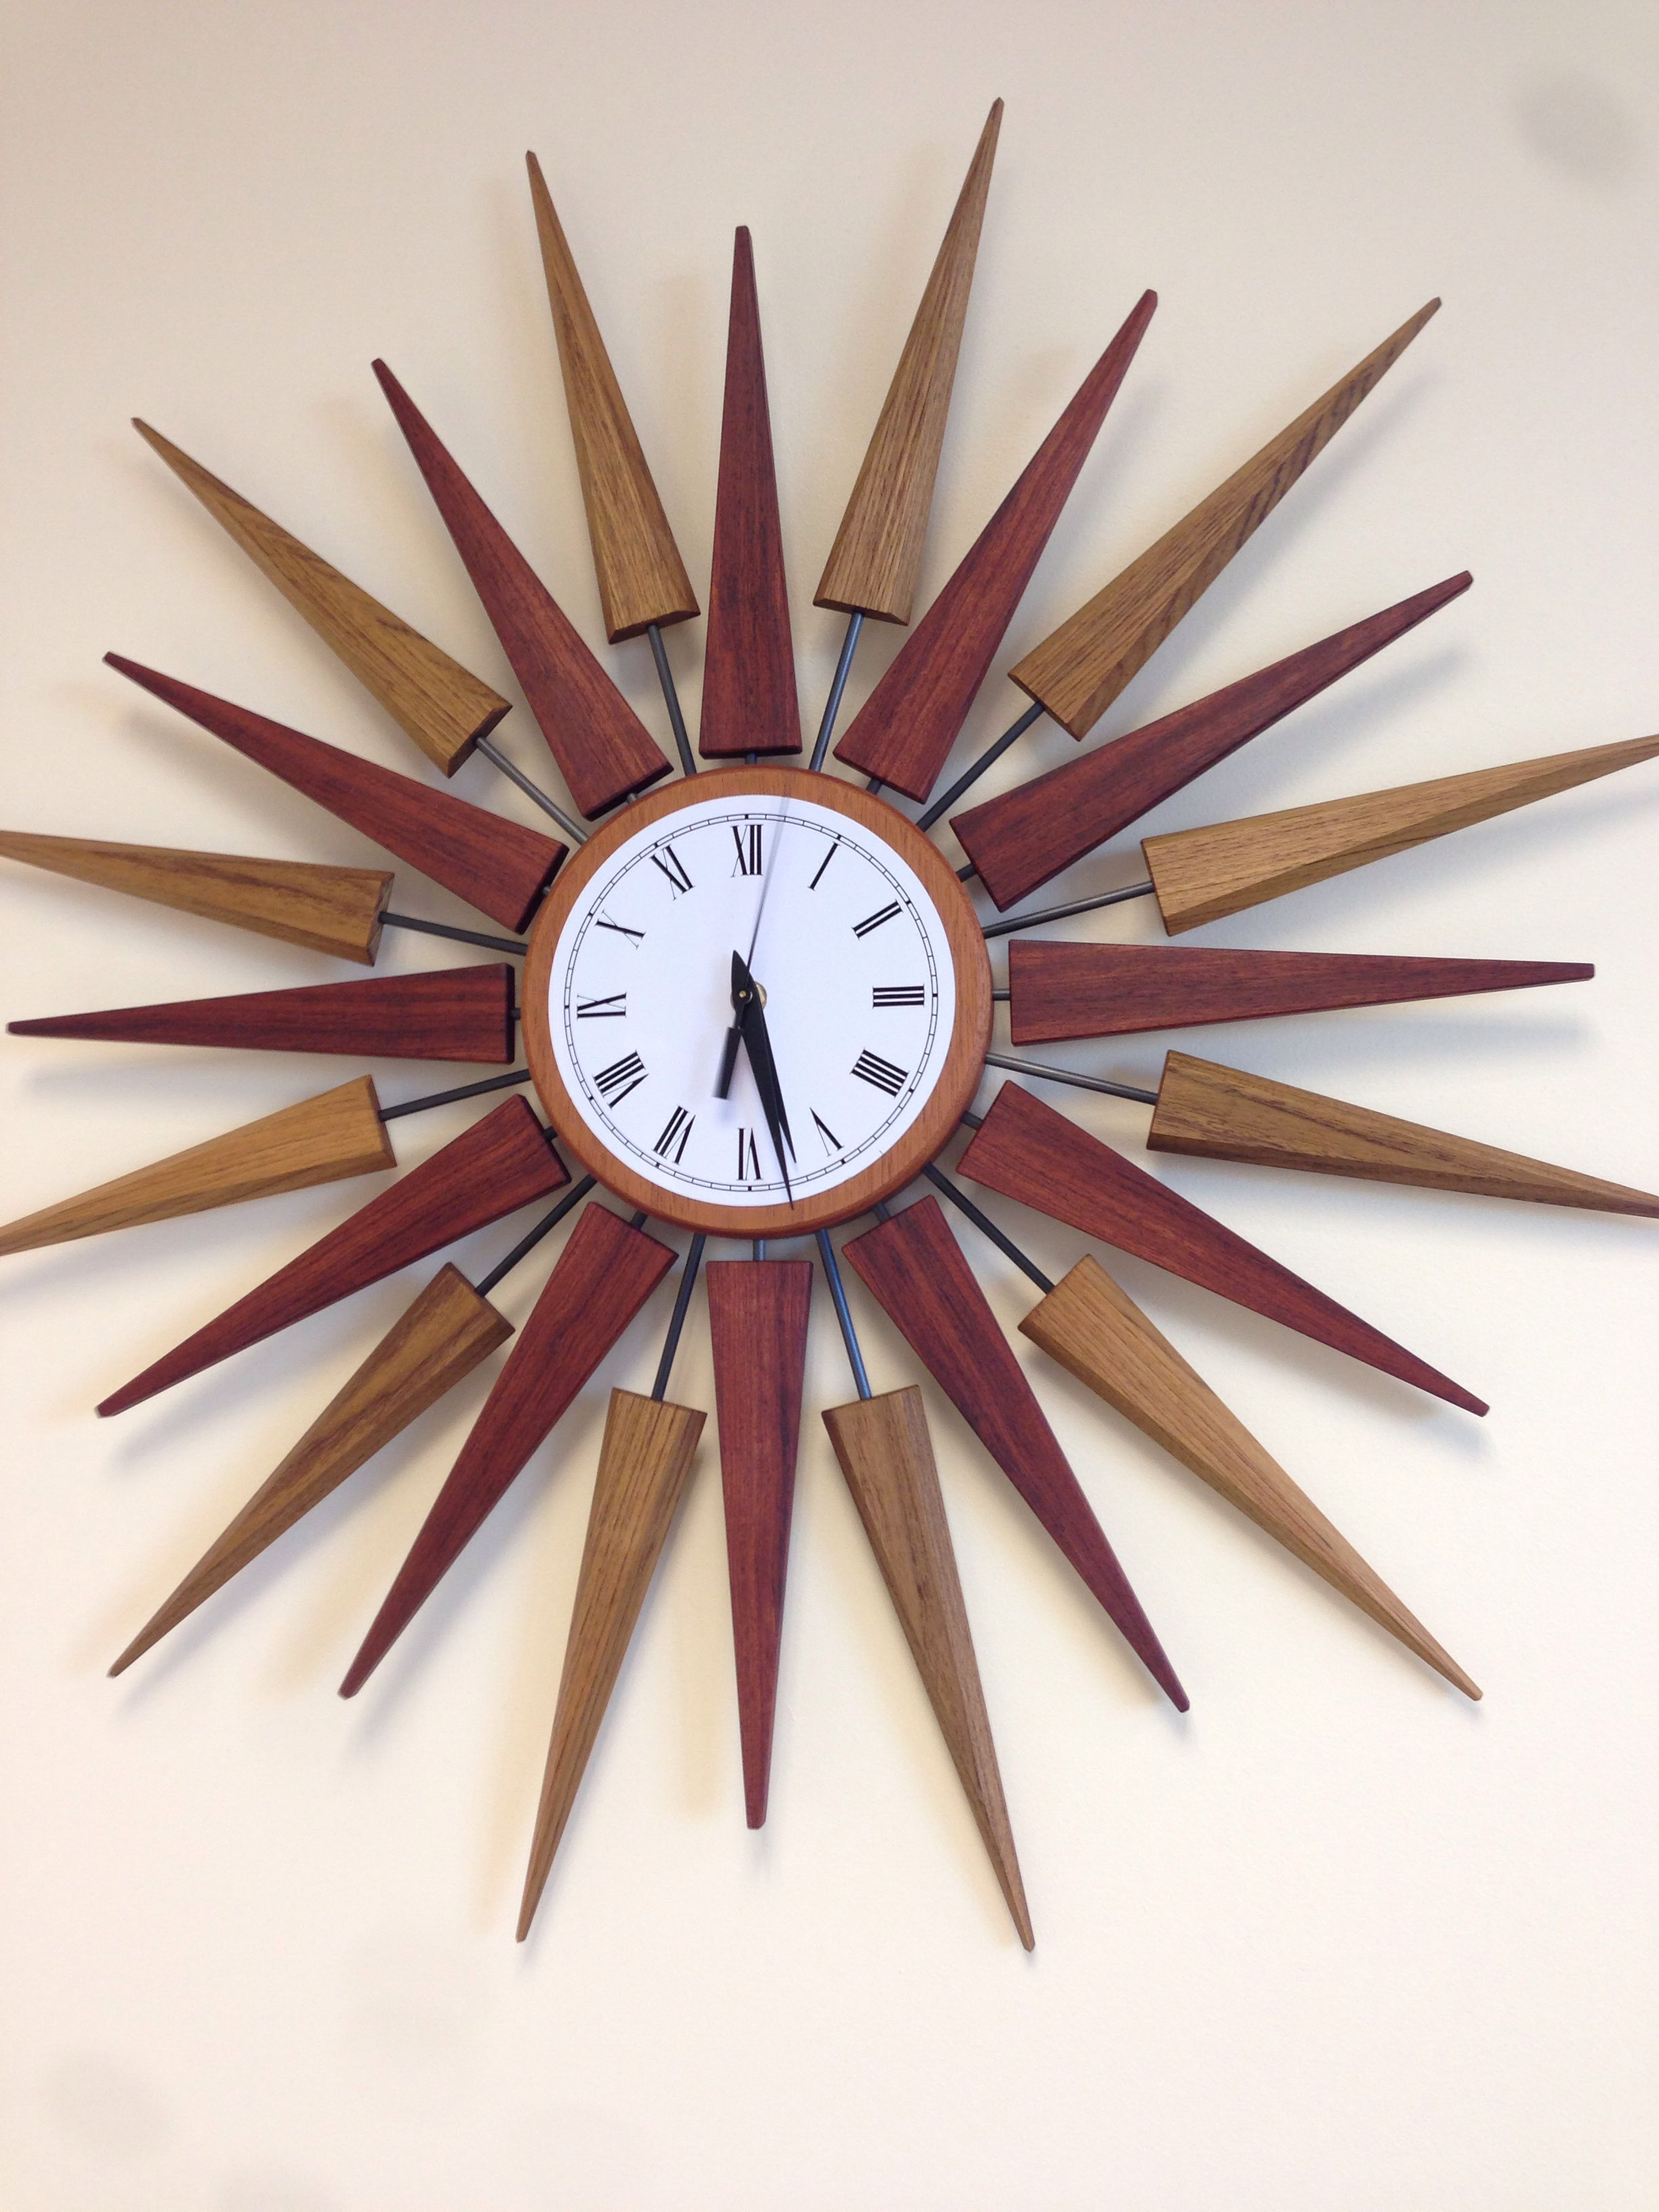 Midcentury modern sunburst wall clock 30 diameter bubinga and teak with carbon fiber rods by brownell furniture